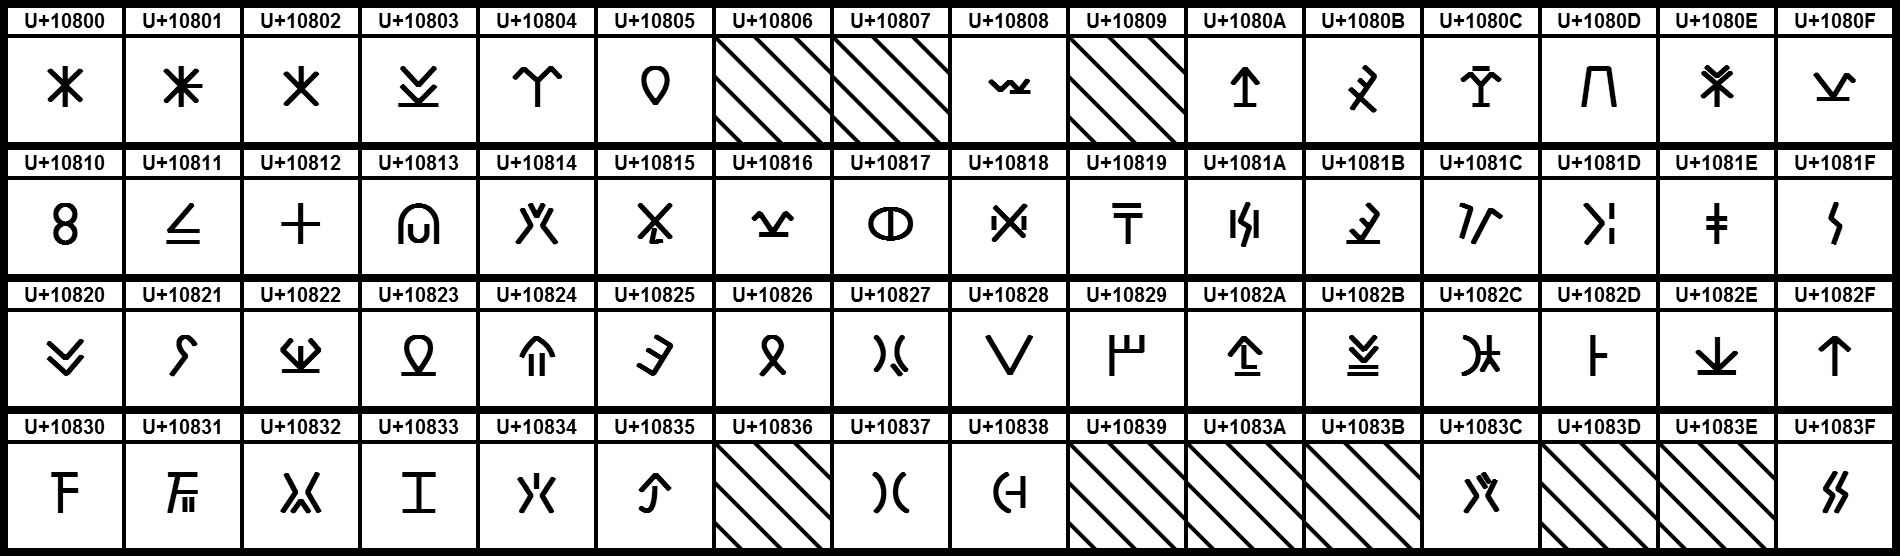 UCB Cypriot Syllabary.png